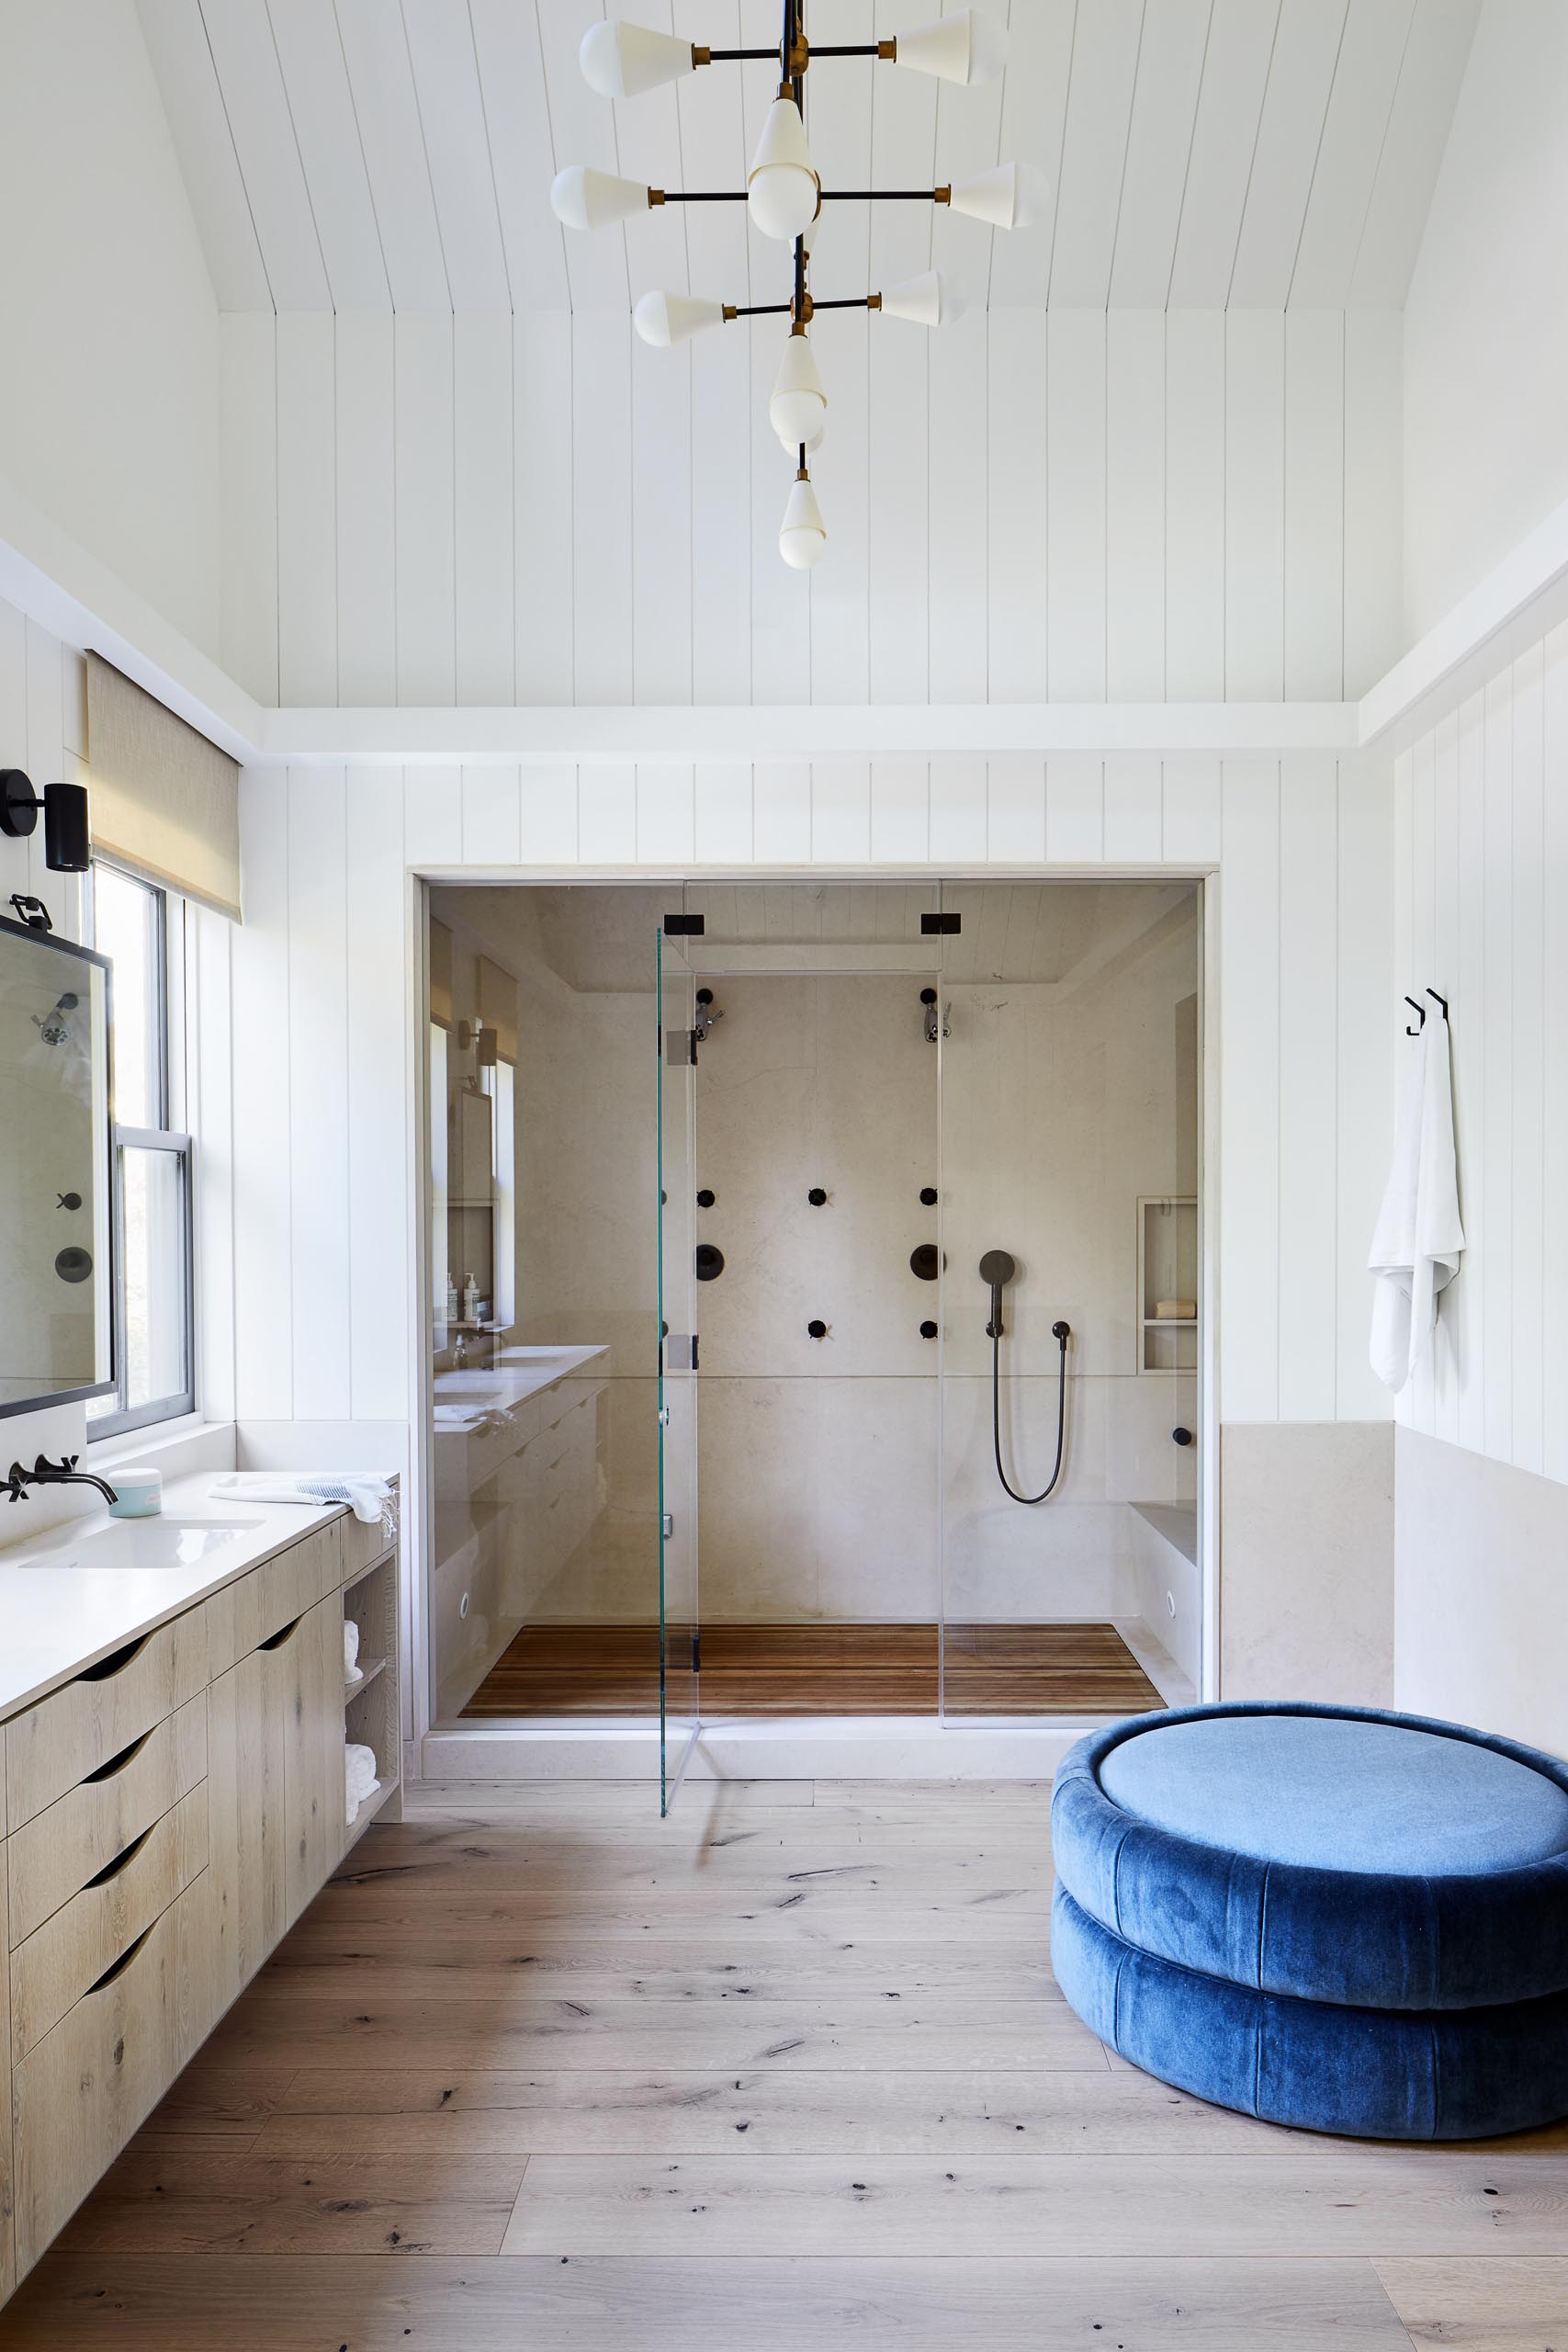 This master bathroom includes a long double sink vanity with the mirrors perfectly positioned between the black framed windows. Adjacent to the vanity is a walk-in shower with benches and double shower heads.